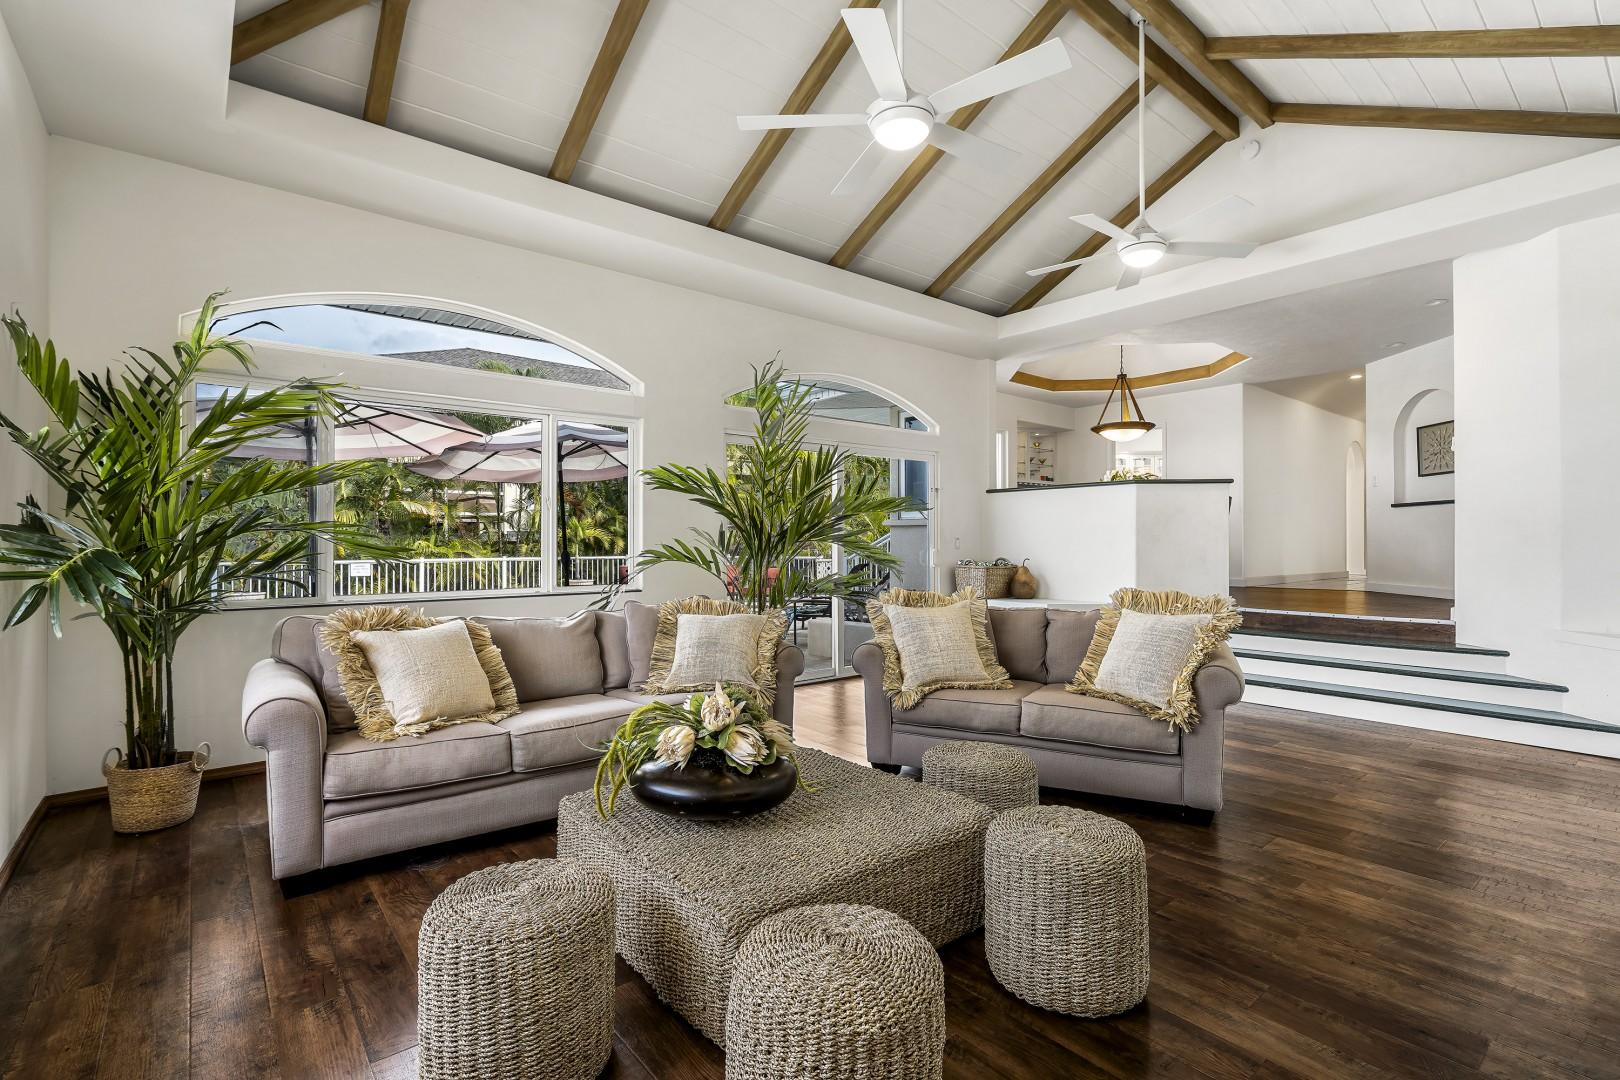 Open beam ceiling and open sightlines make this a perfect home away from home!